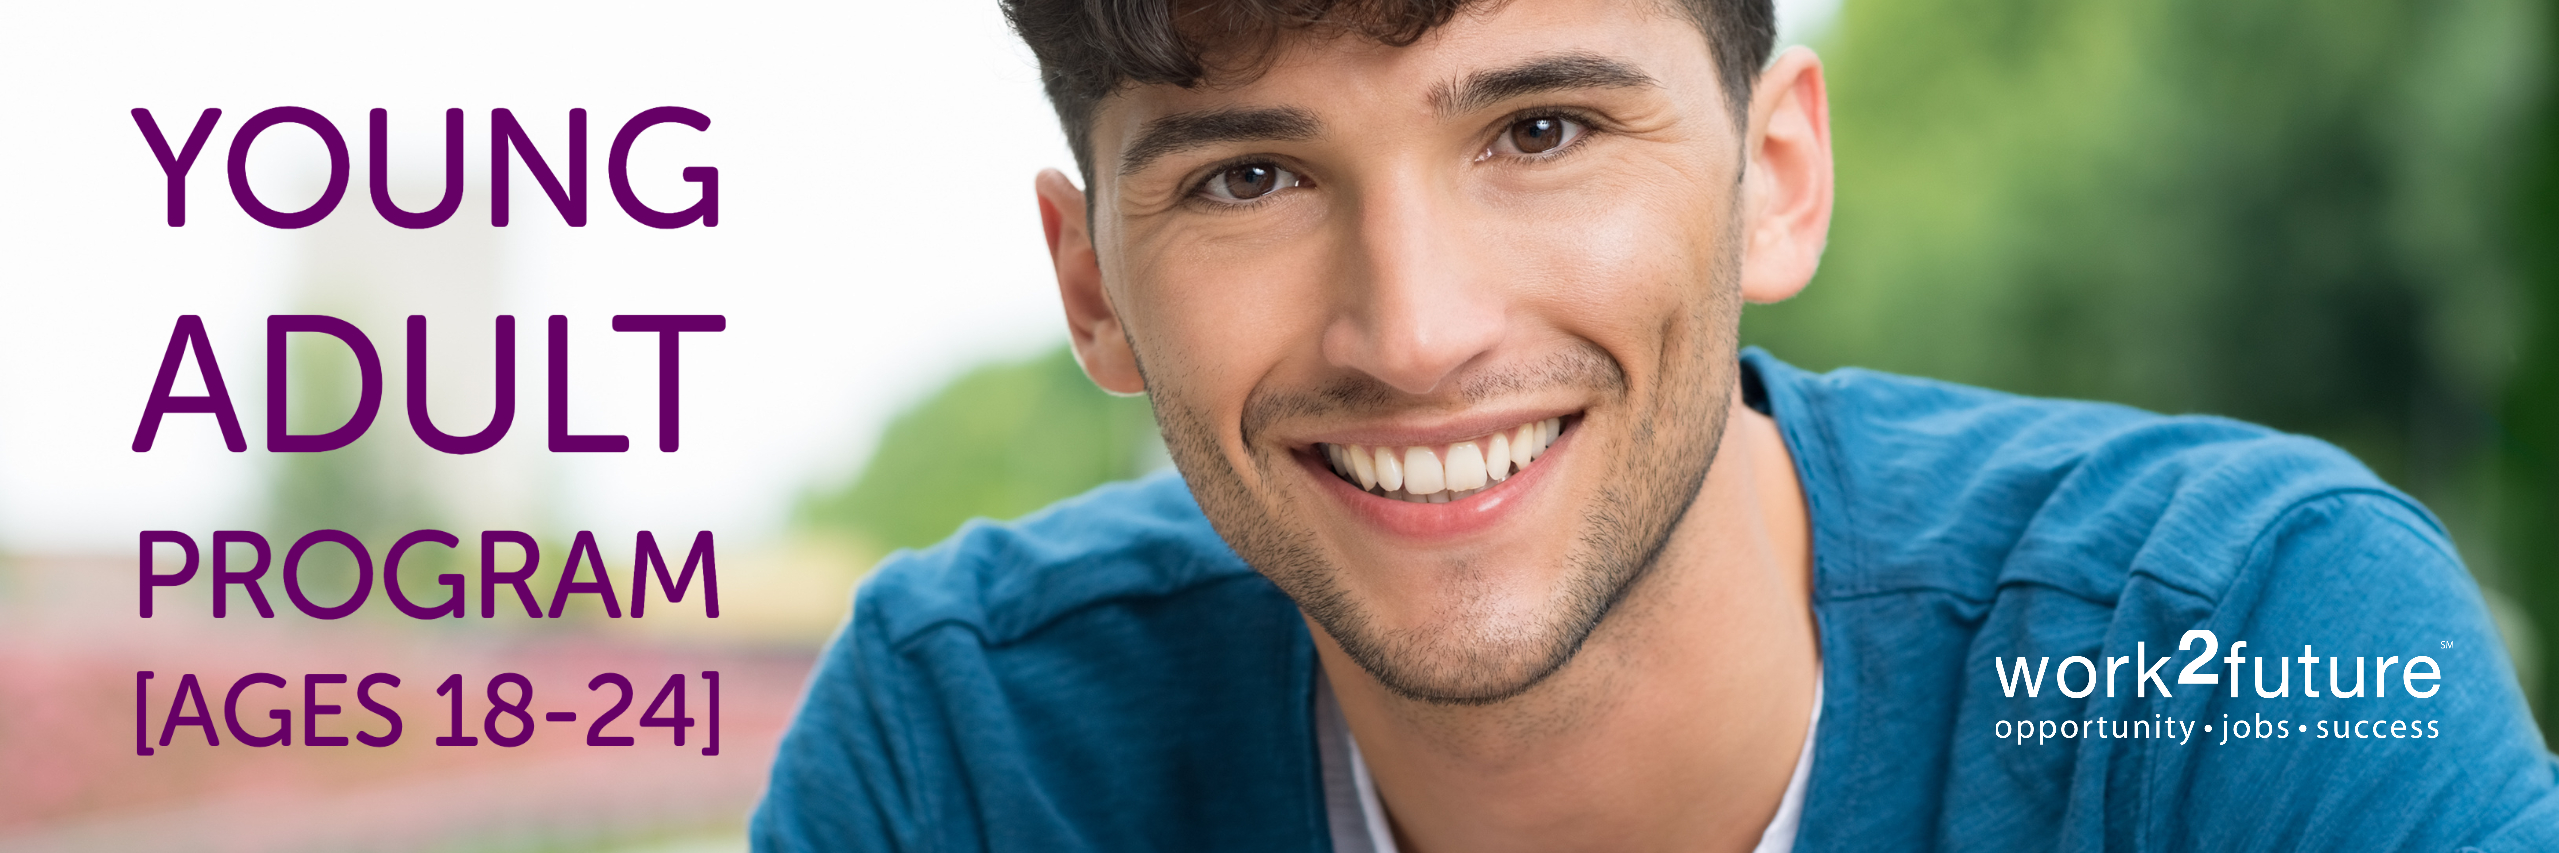 young adult programs image of young man smiling